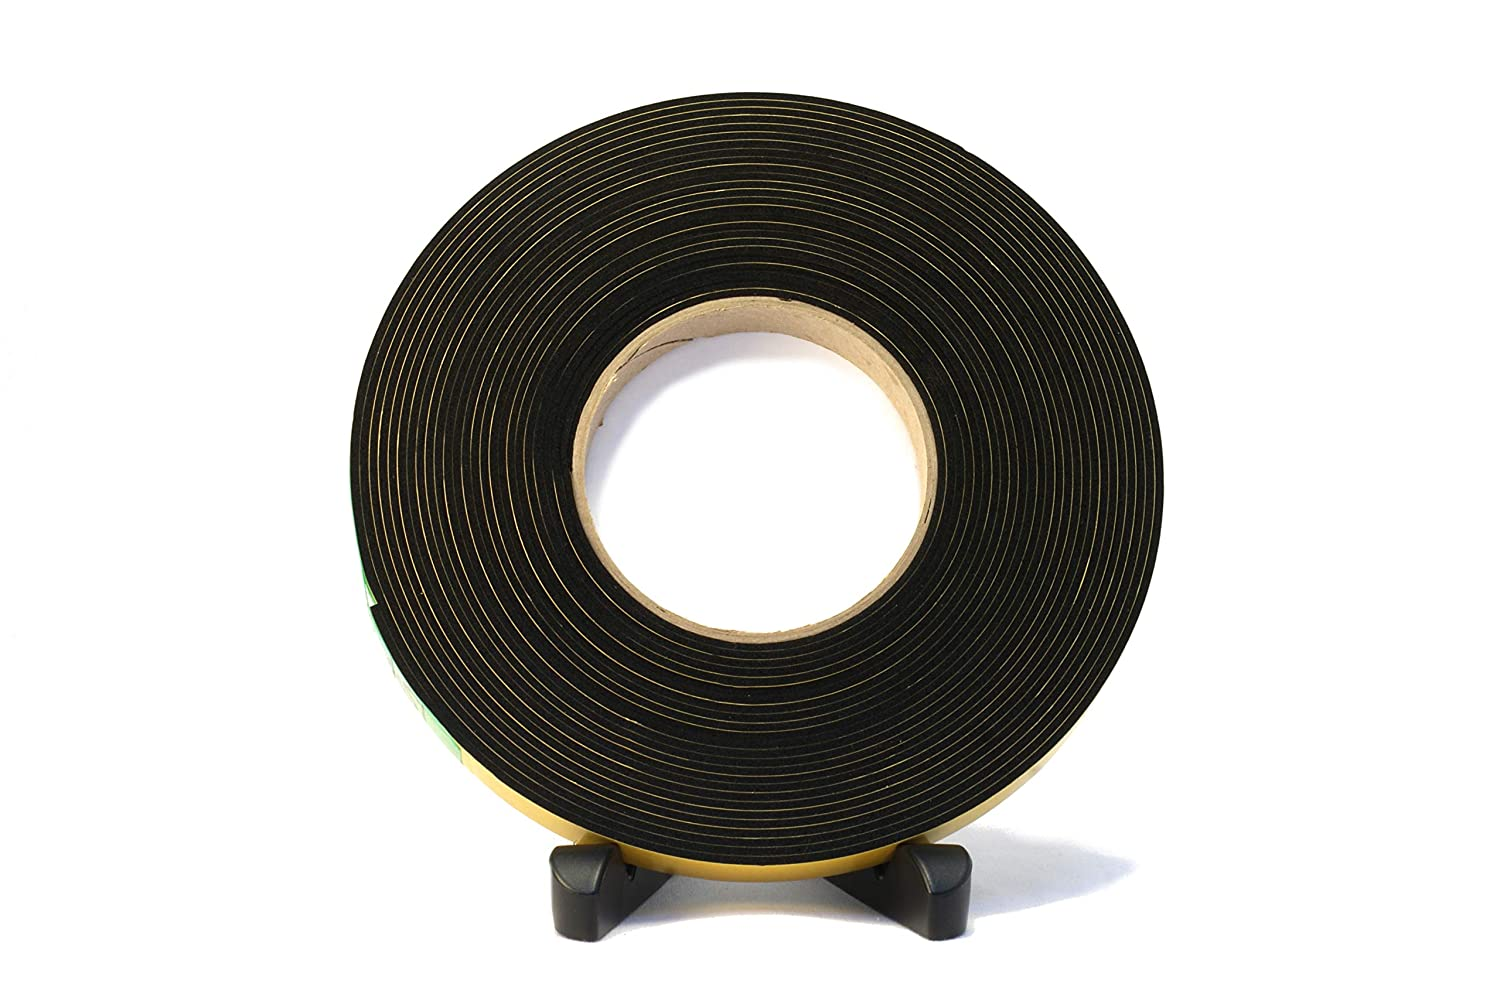 Neoprene Rubber self adhesive strip 5 8 wide x 5 64 thick x 33 feet long